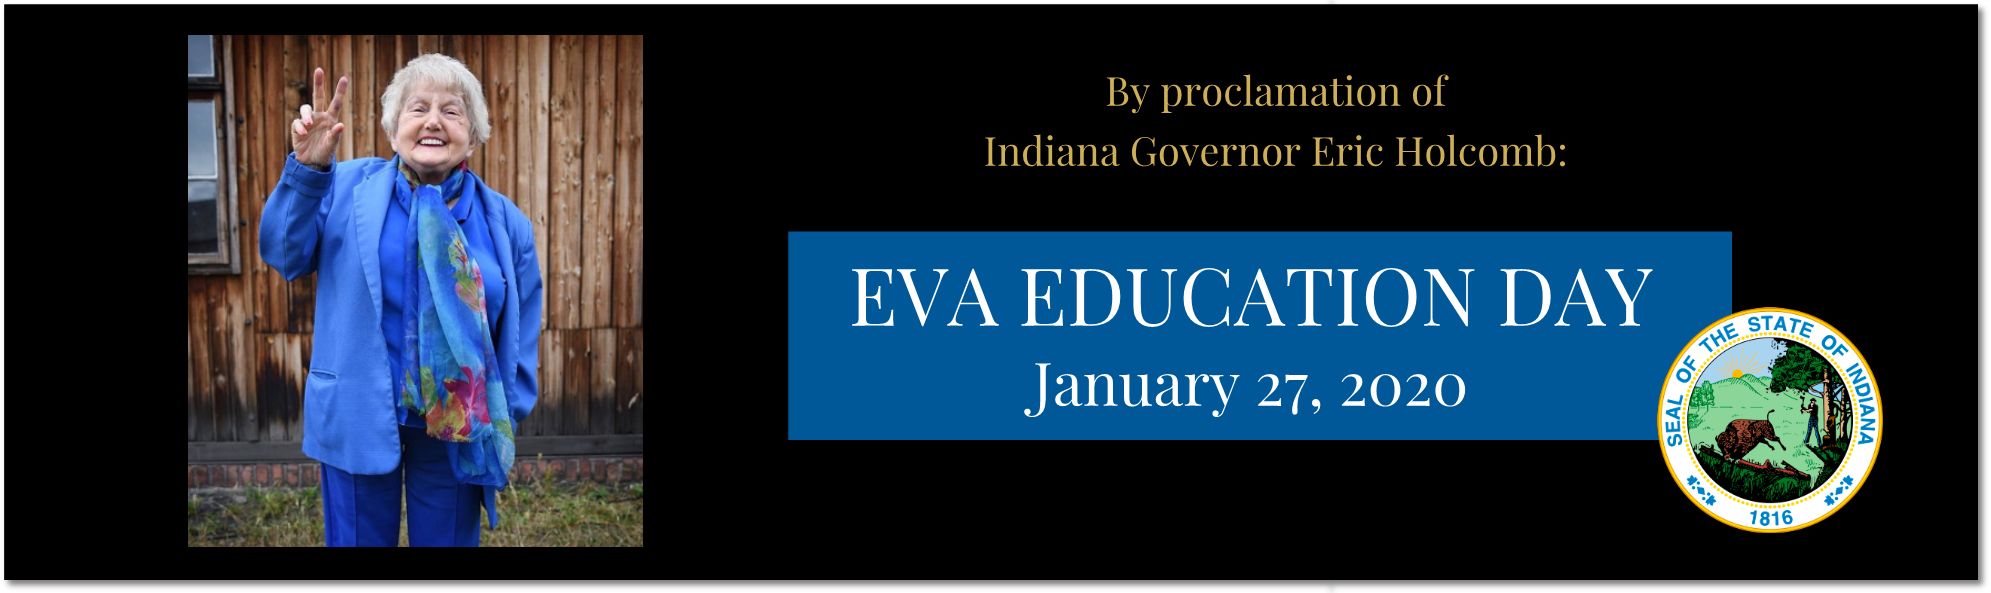 January 27, 2020 EVA EDUCATION DAY Indiana Governor Eric Holcomb, WFYI and Ted Green Films are commemorating January 27, 2020 — the 75th anniversary of liberation of Auschwitz — as Eva Education Day across the state.